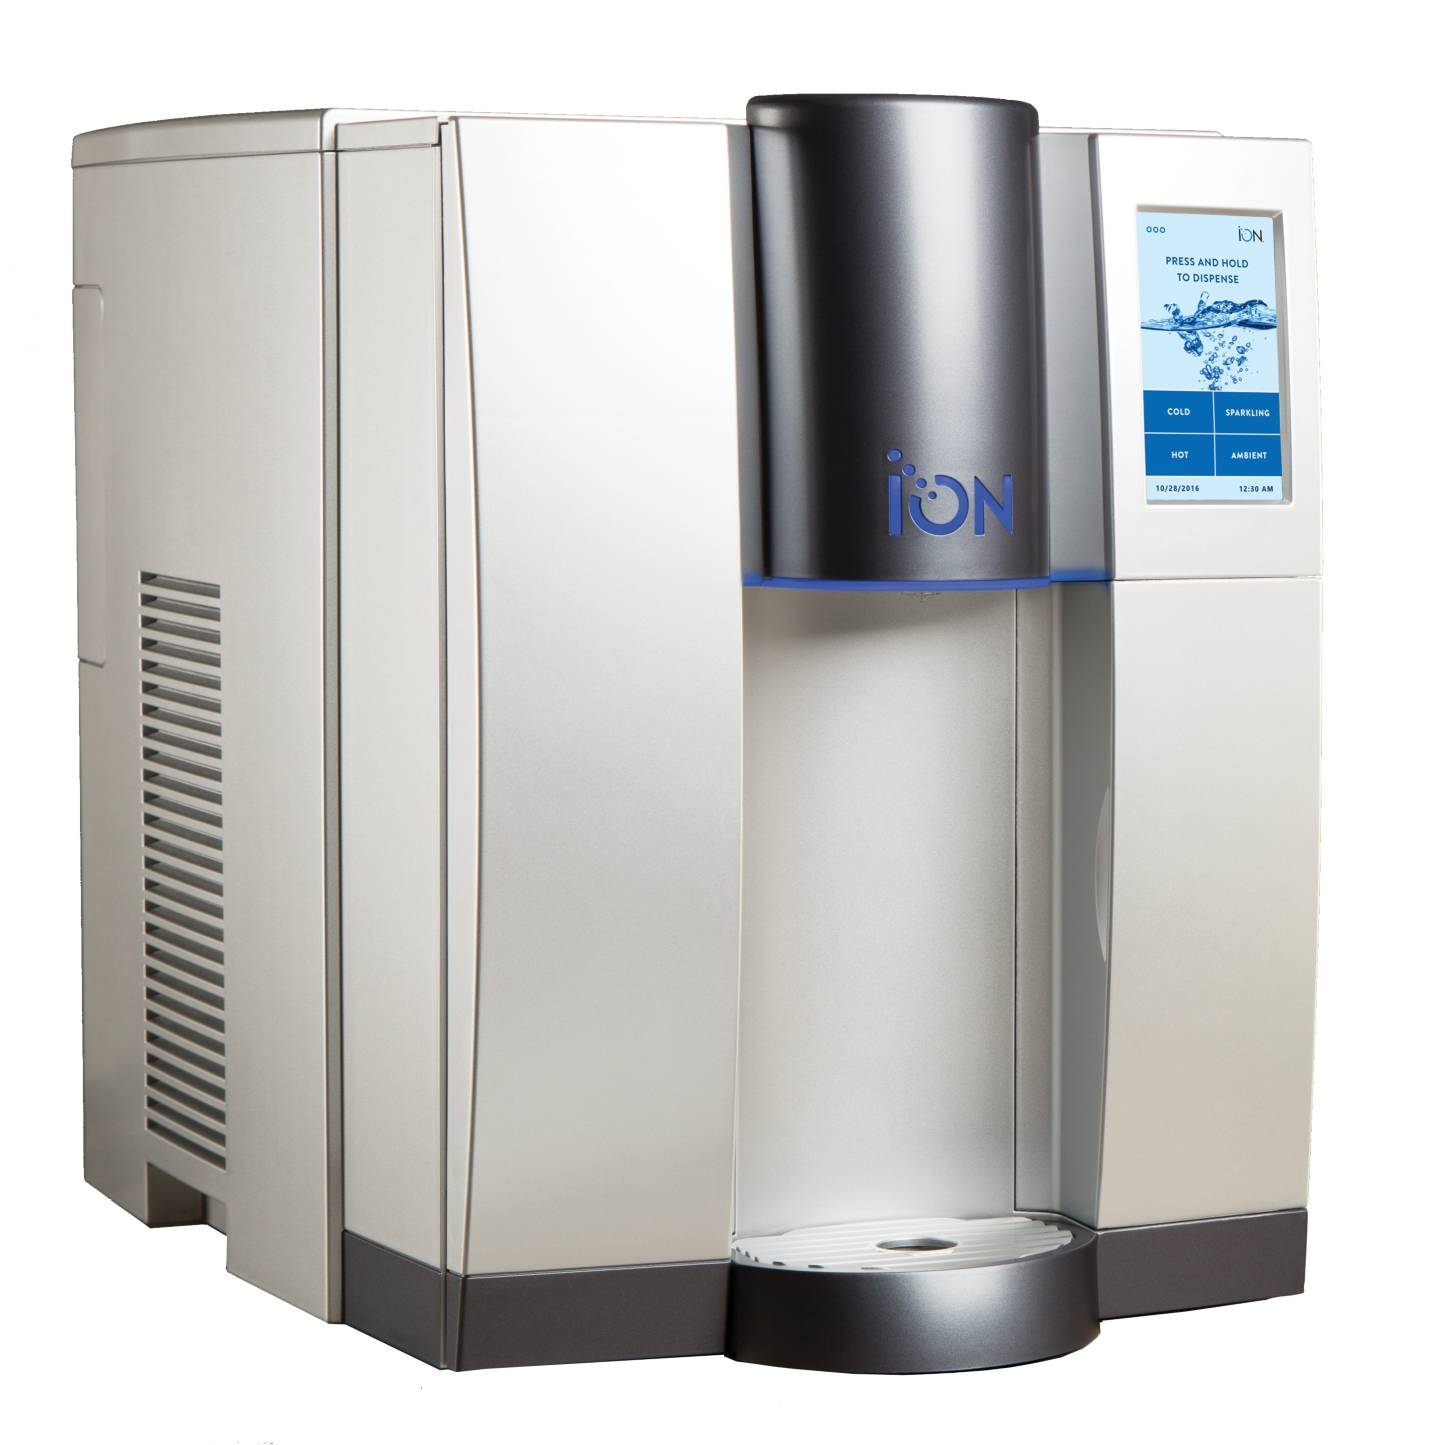 ION waterkoeler, ION watercooler, ION leidingwaterkoeler